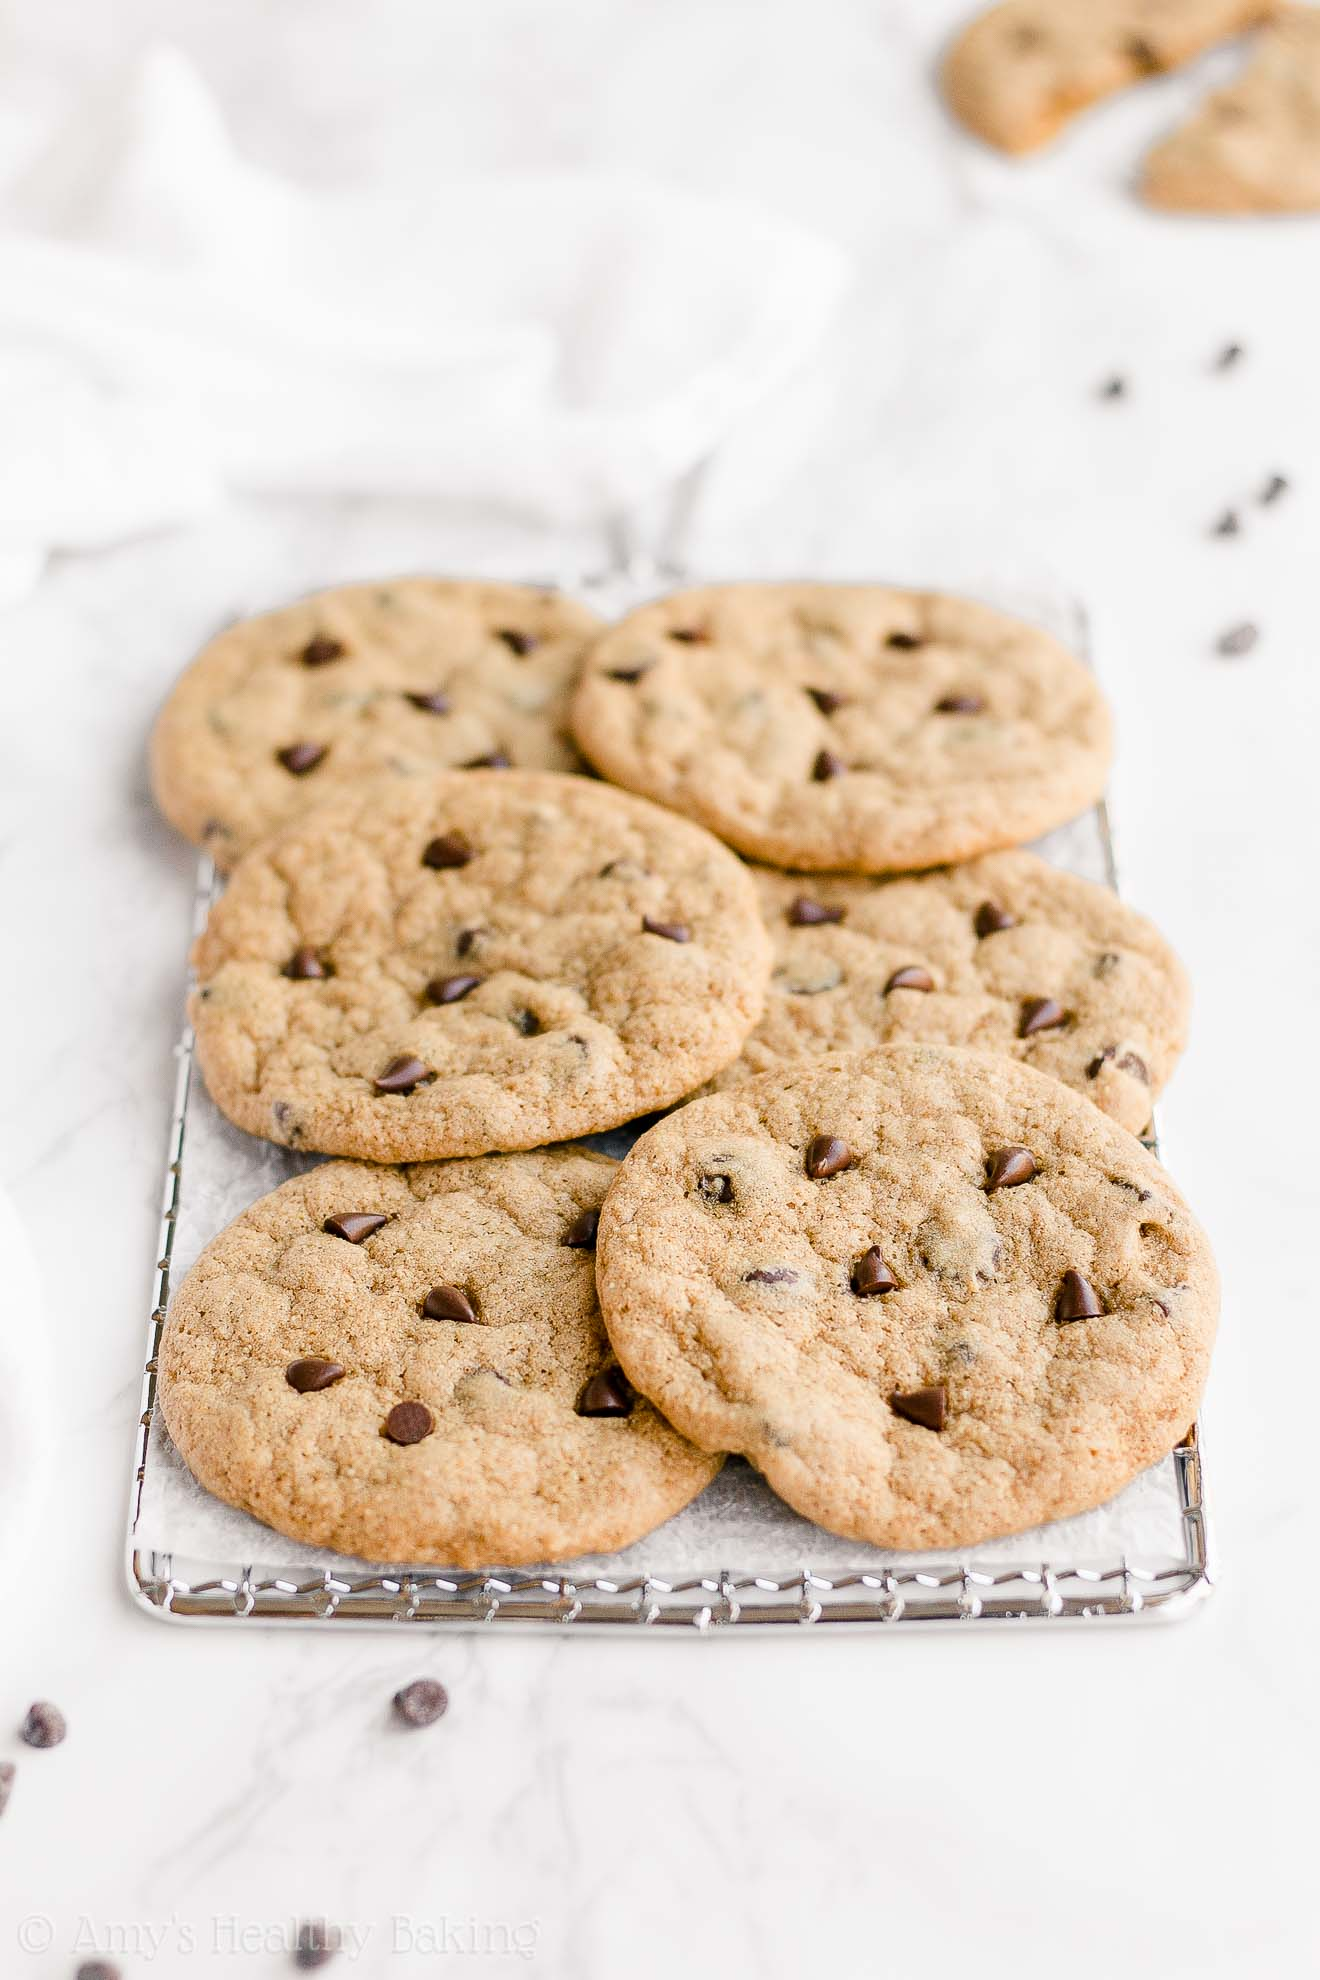 Healthy Clean Eating Gluten Free One-Bowl Chewy Chocolate Chip Cookies